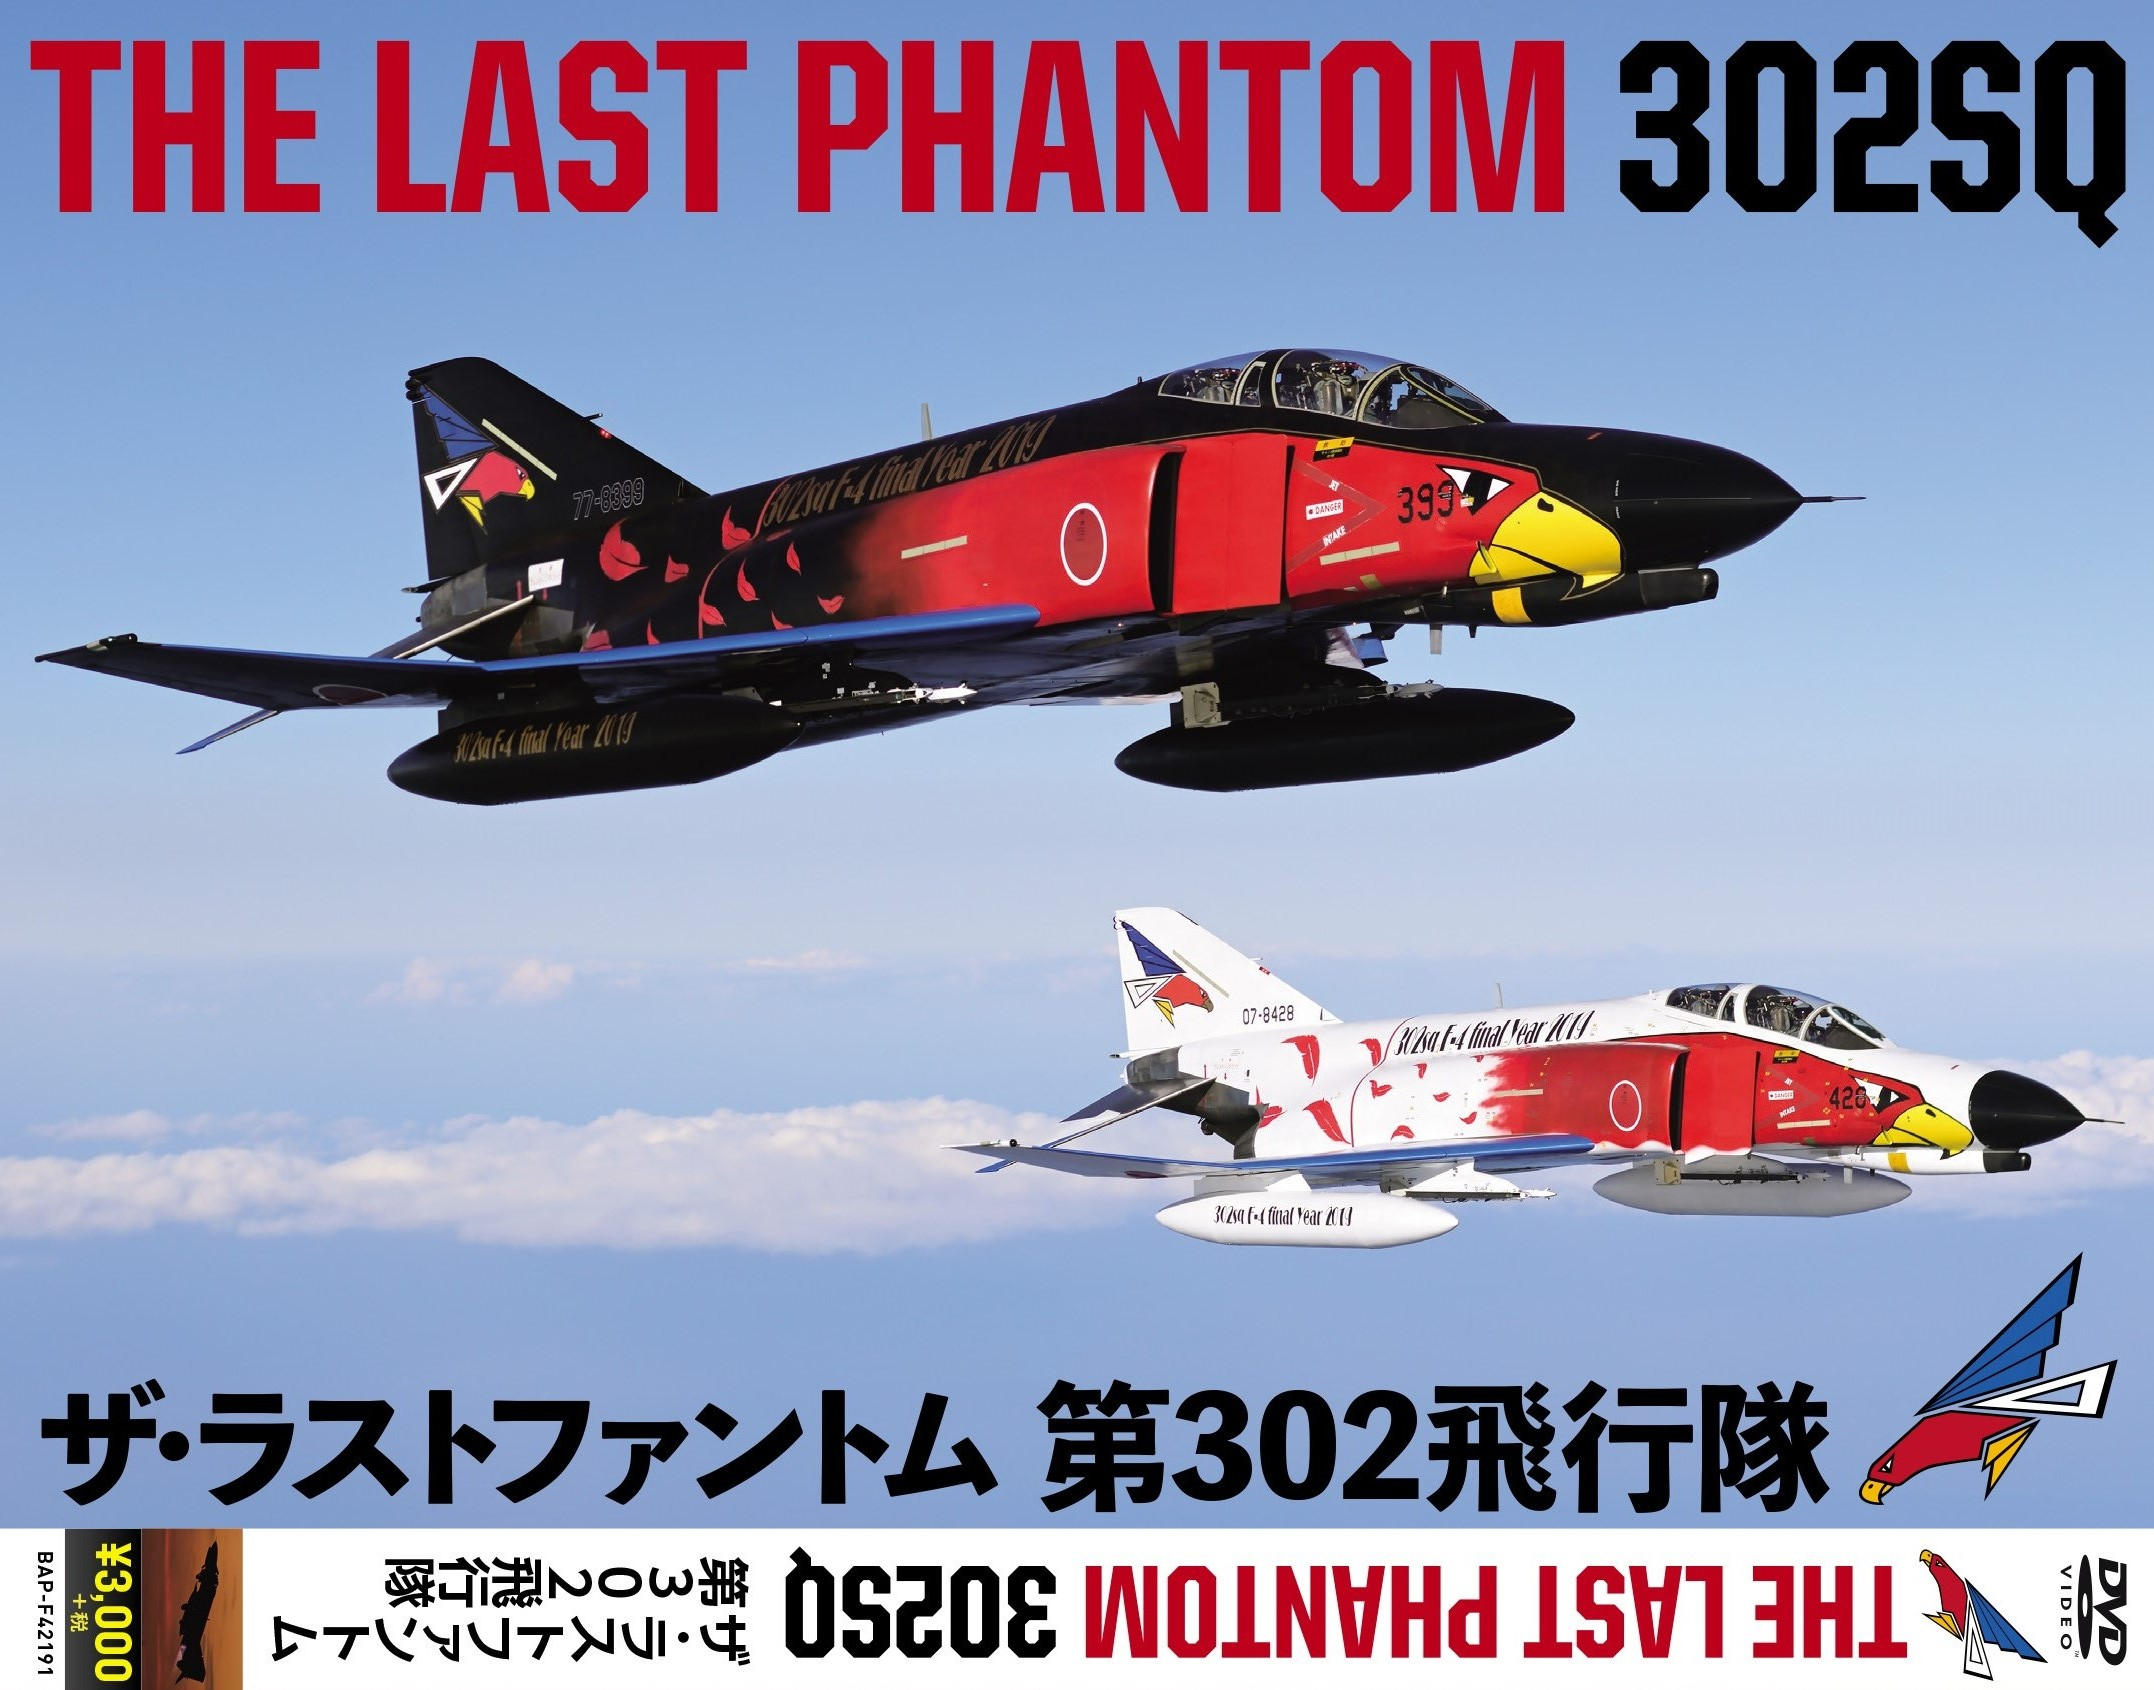 《DVD》 THE LAST PHANTOM 302SQ 【ネコポス便可】